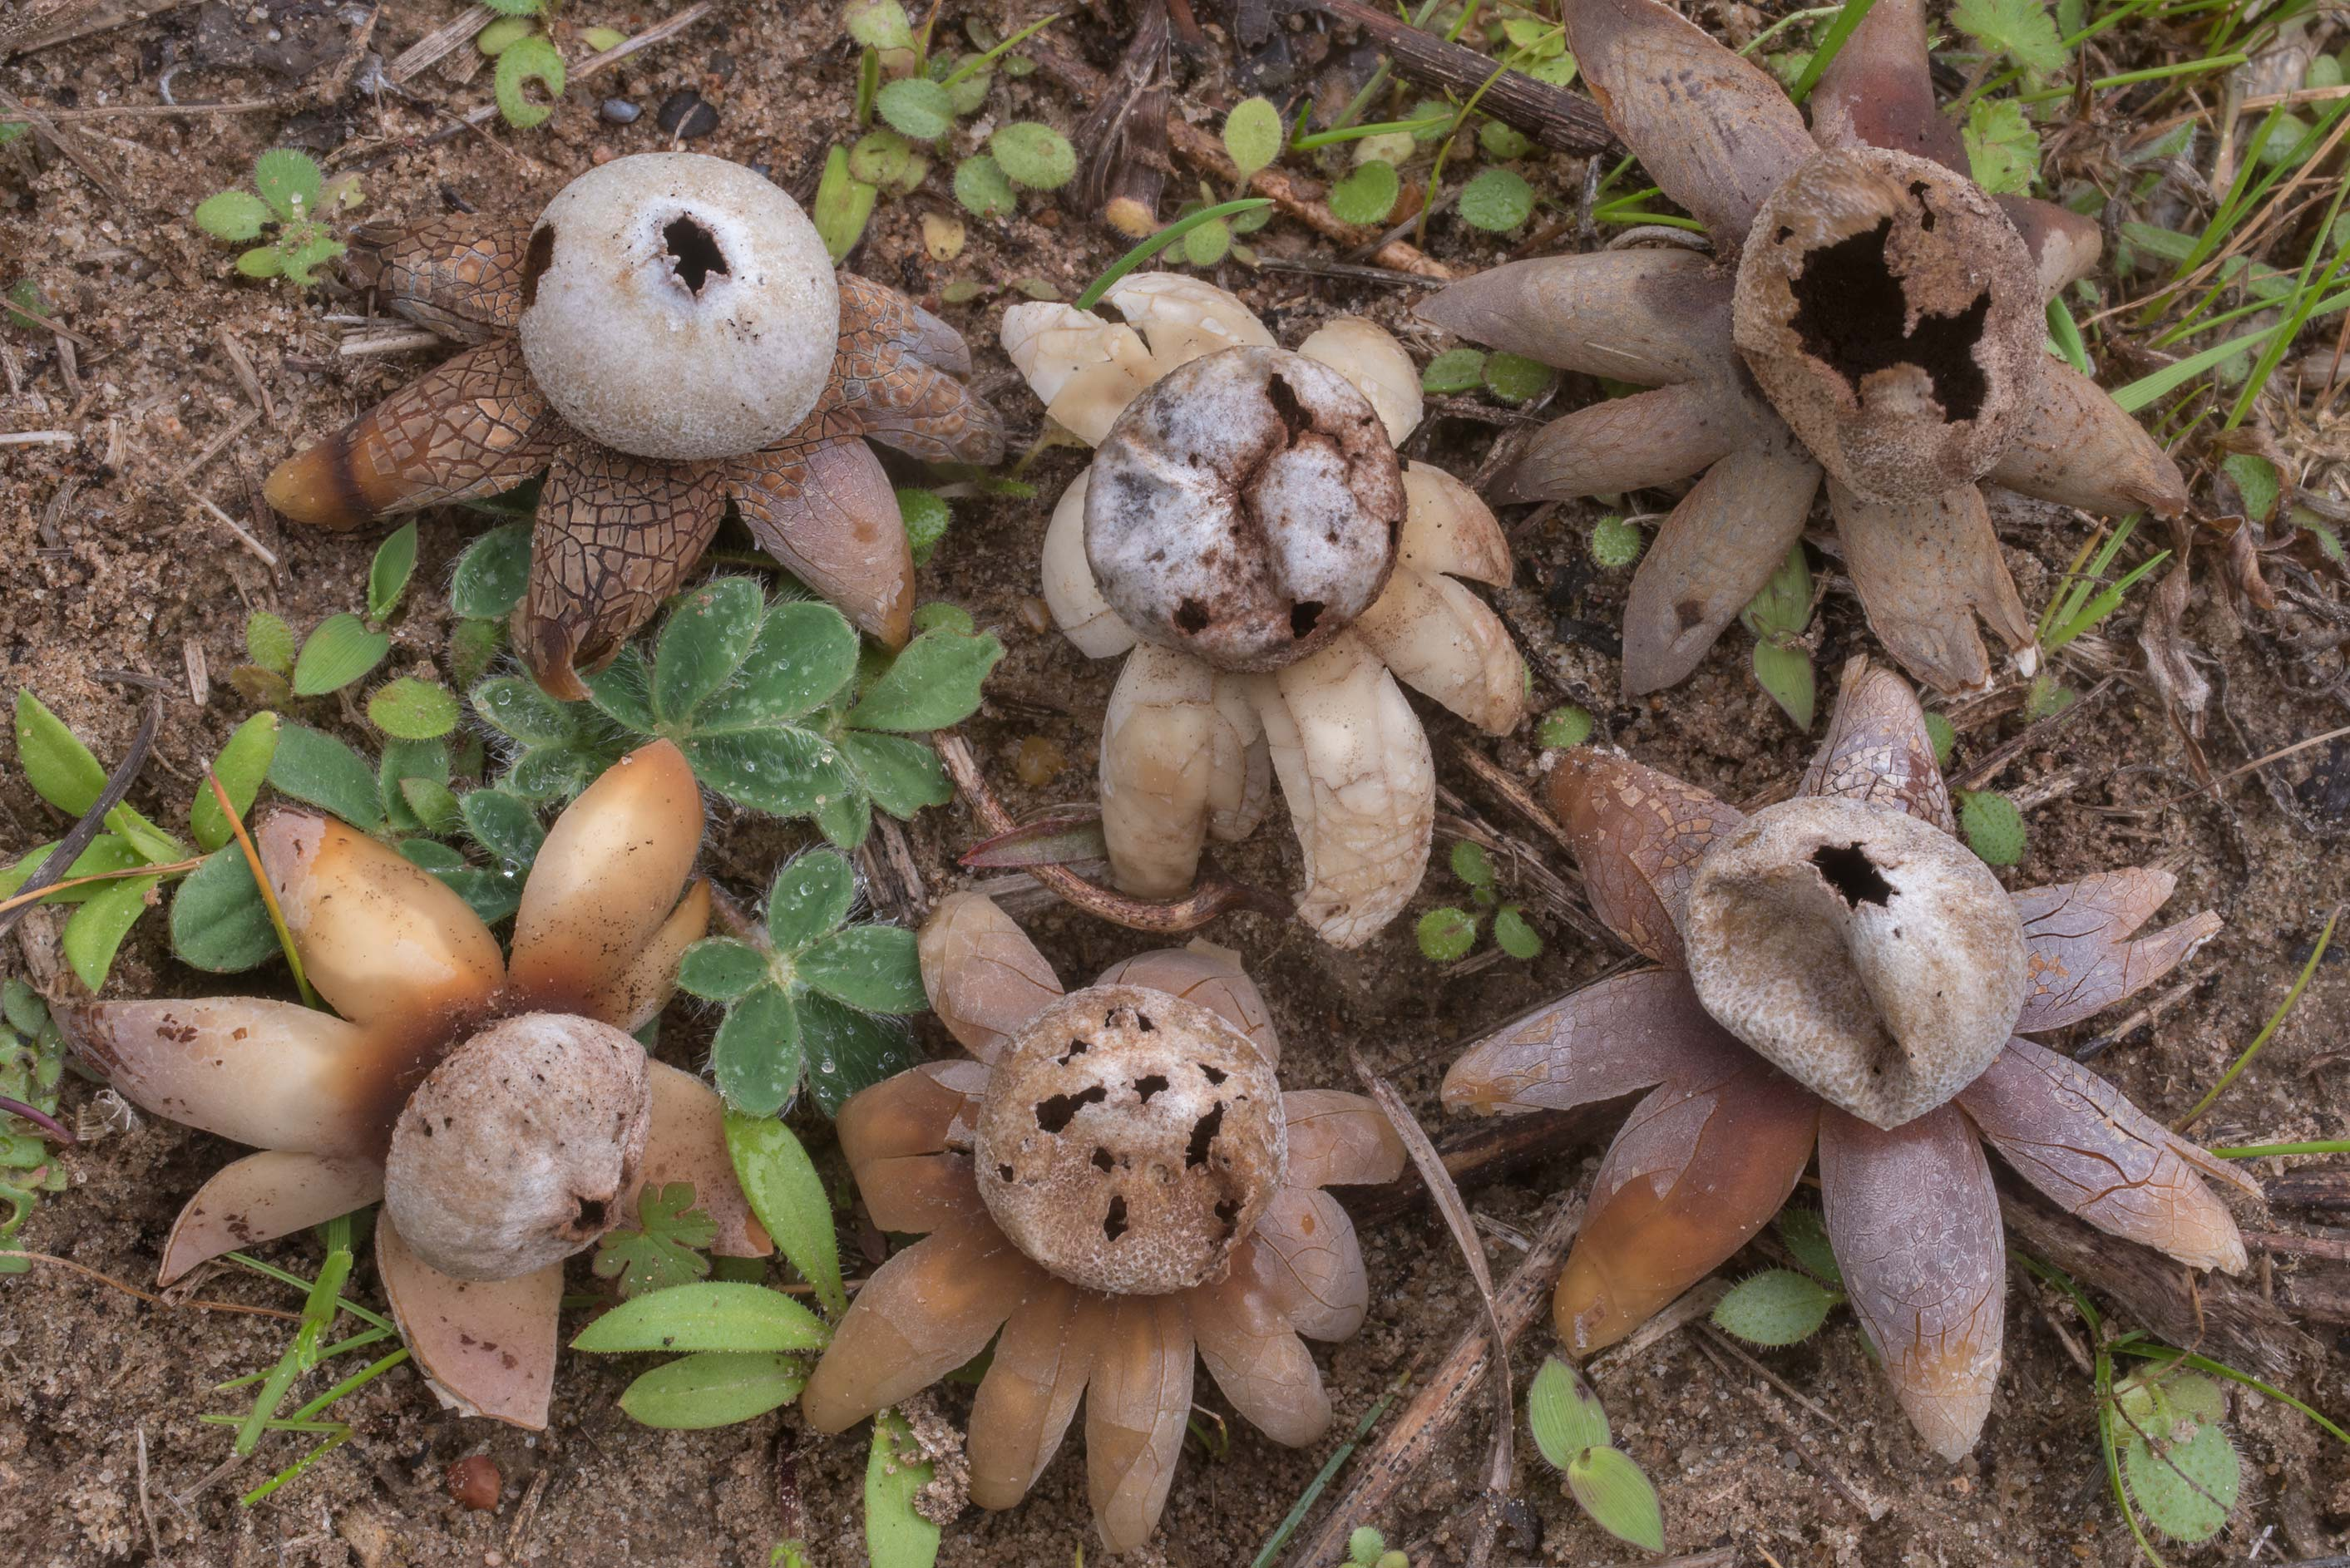 Mature opened hygroscopic earthstar mushrooms...State Historic Site. Washington, Texas